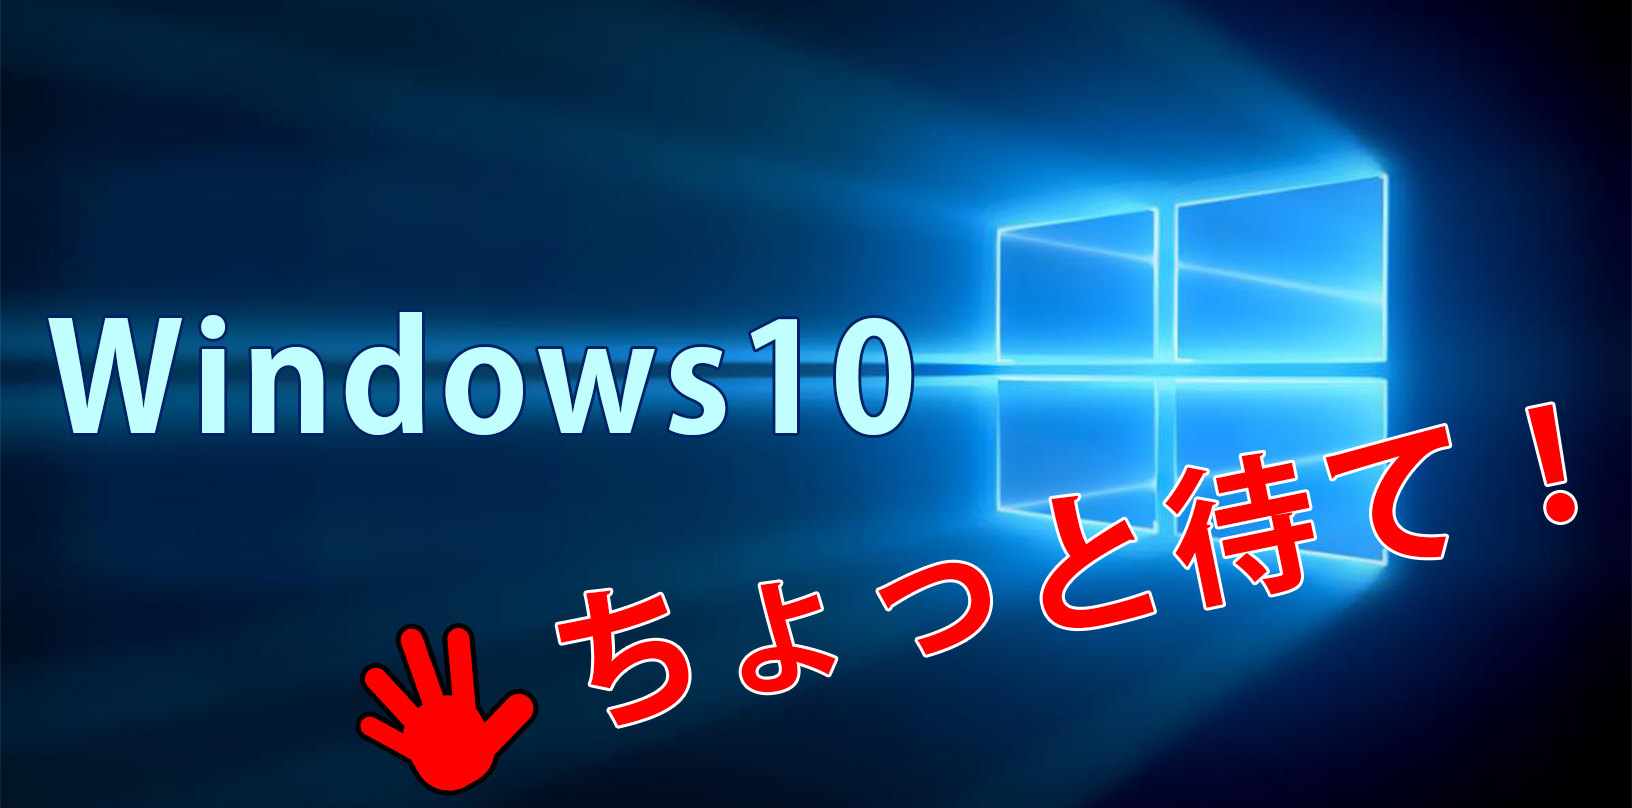 windows10_eyecatch